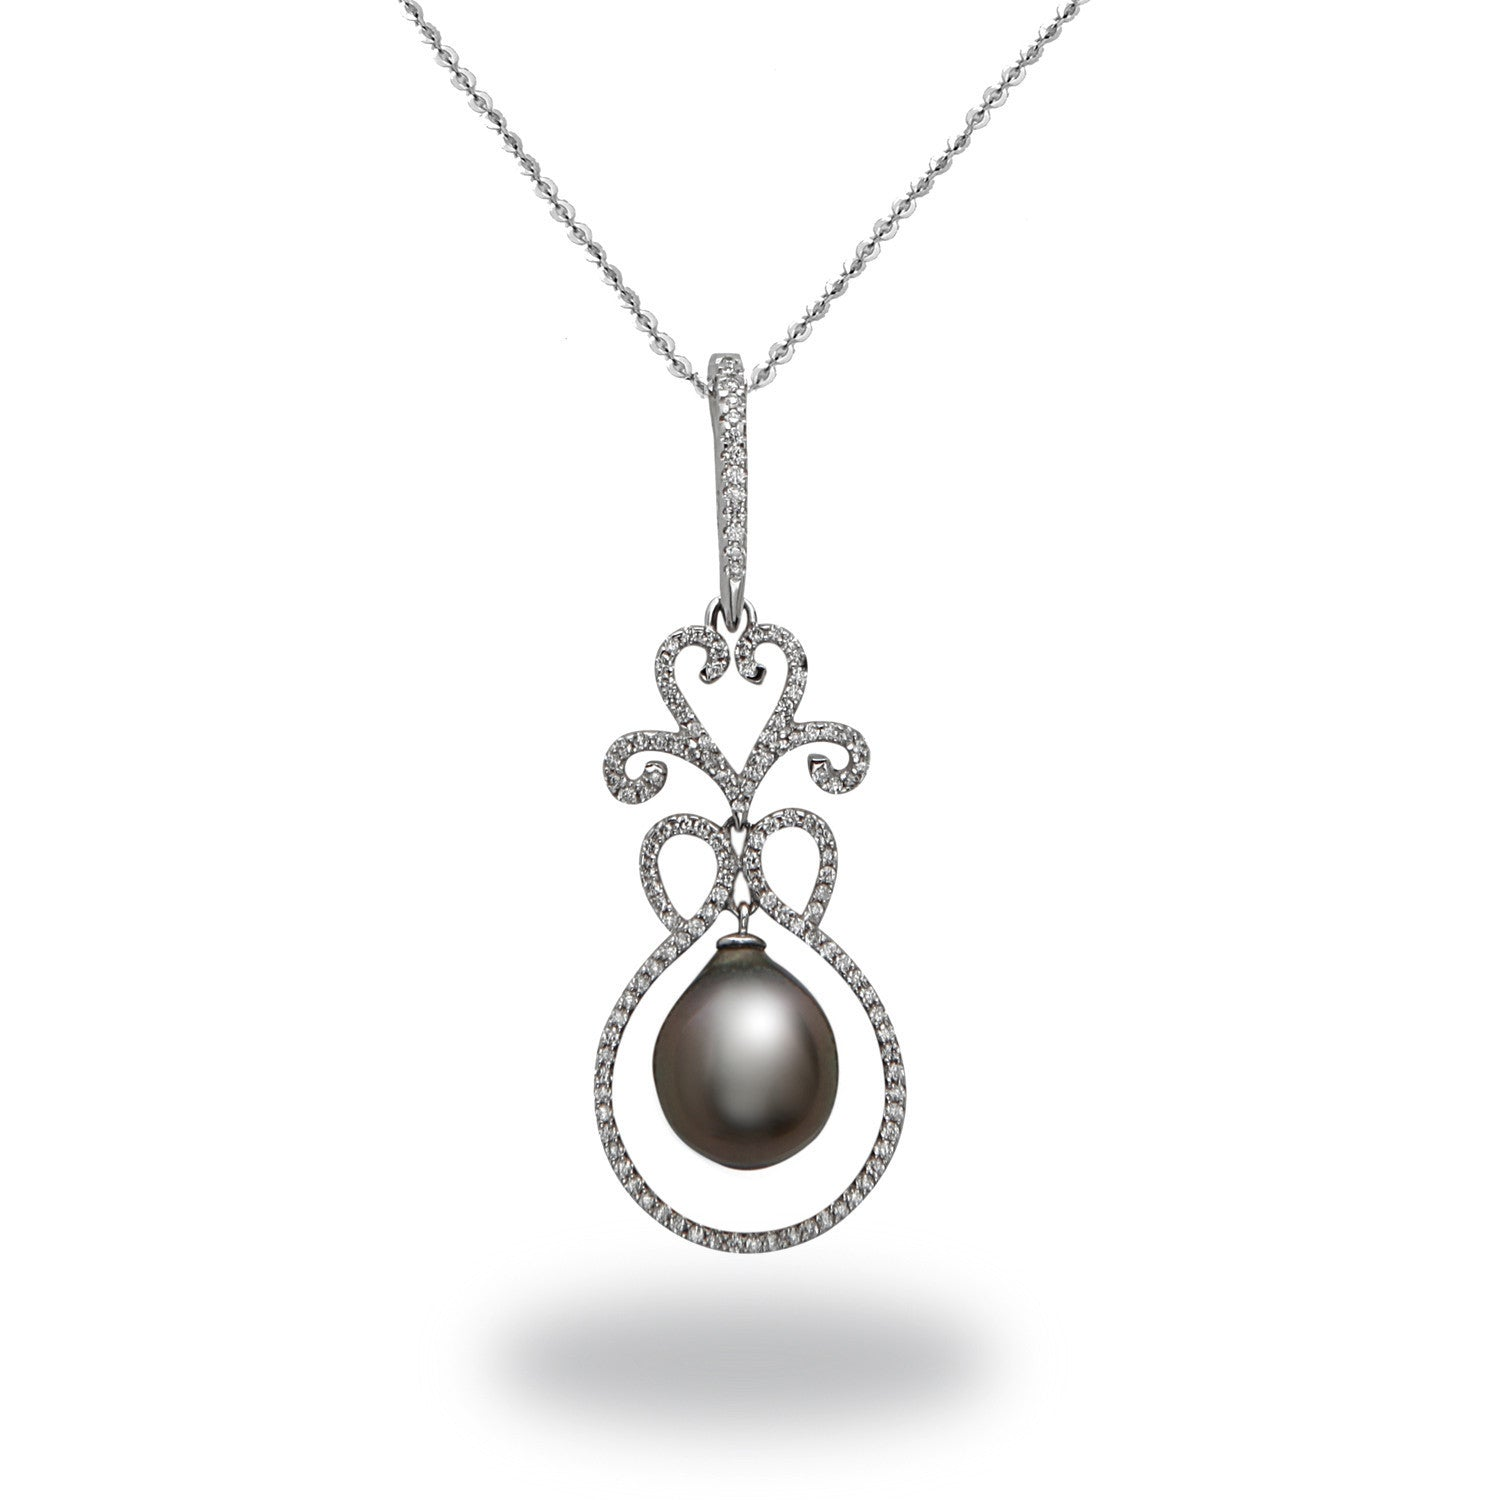 Chandelier 10-11mm Tahitian Cultured Pearl and Diamond Enhancer